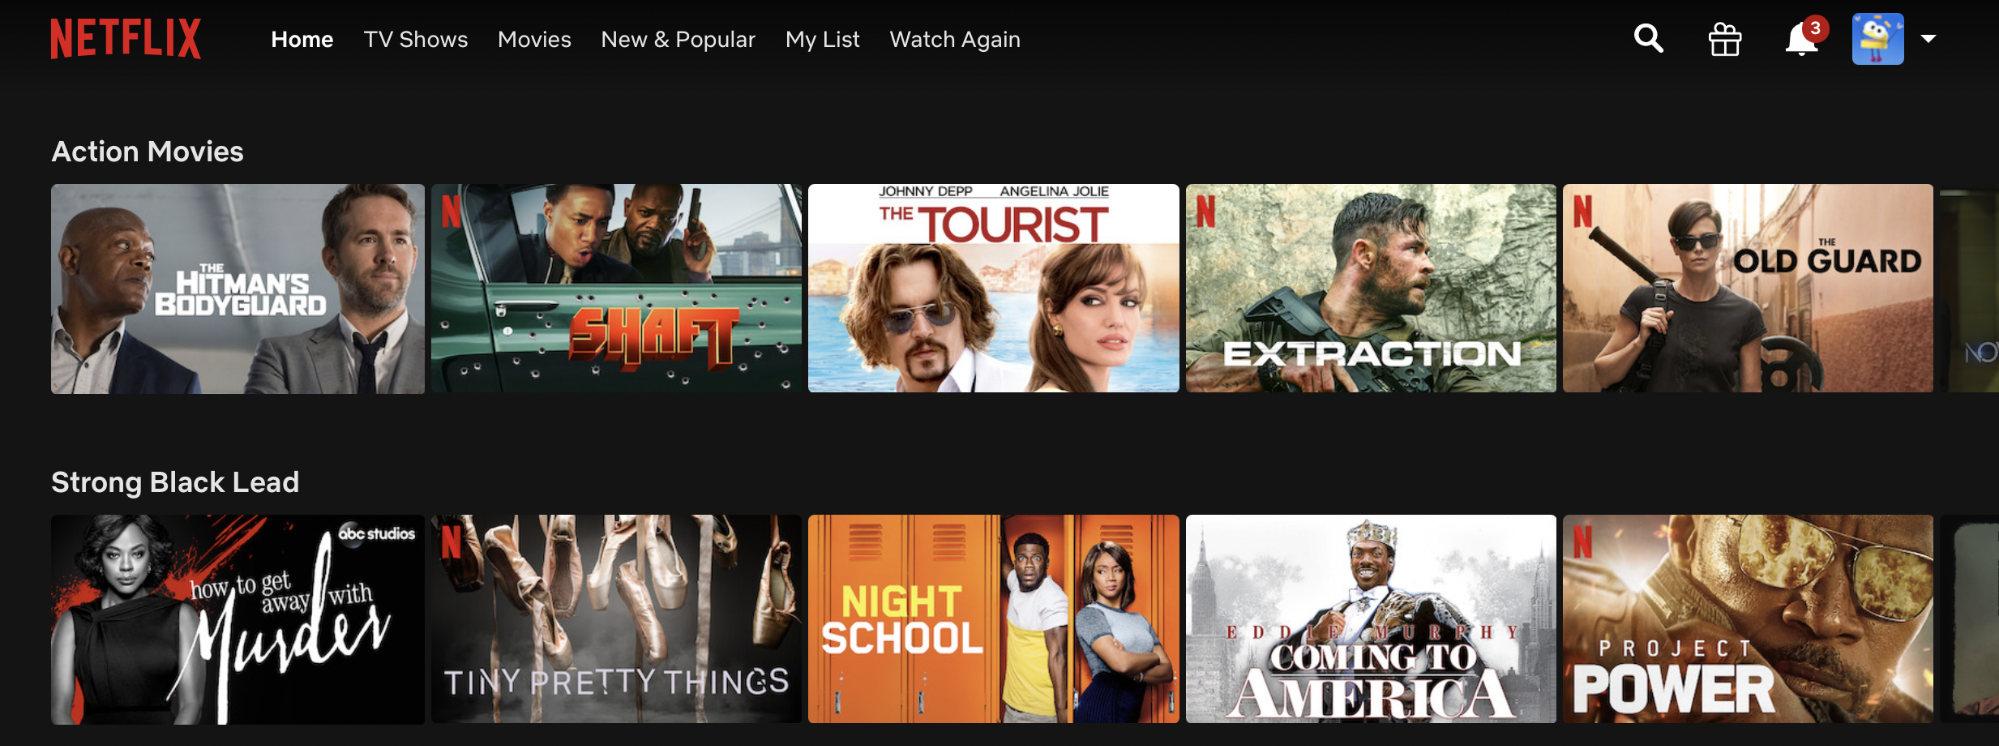 Netflix personalized content recommendations